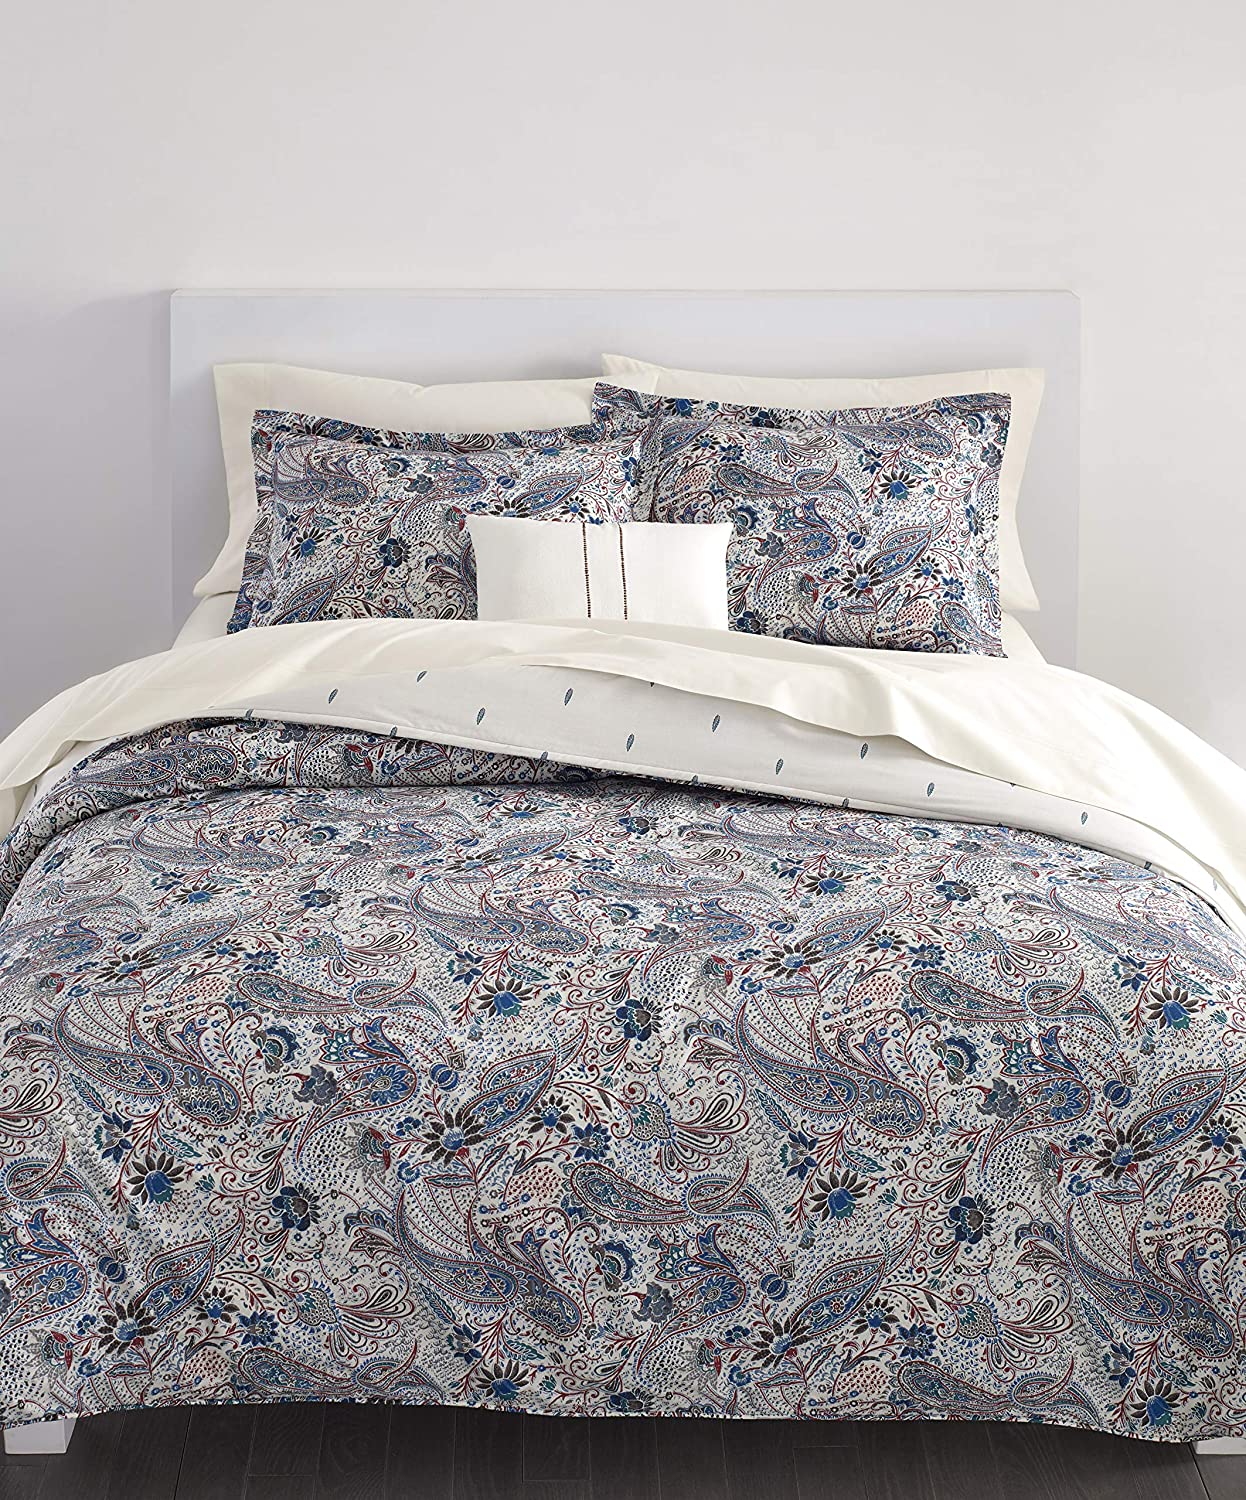 Chaps Home Woodlawn Paisley 100% Cotton Printed 3-Piece Reversible, Highly Breathable Comforter Set, King, RED Multi